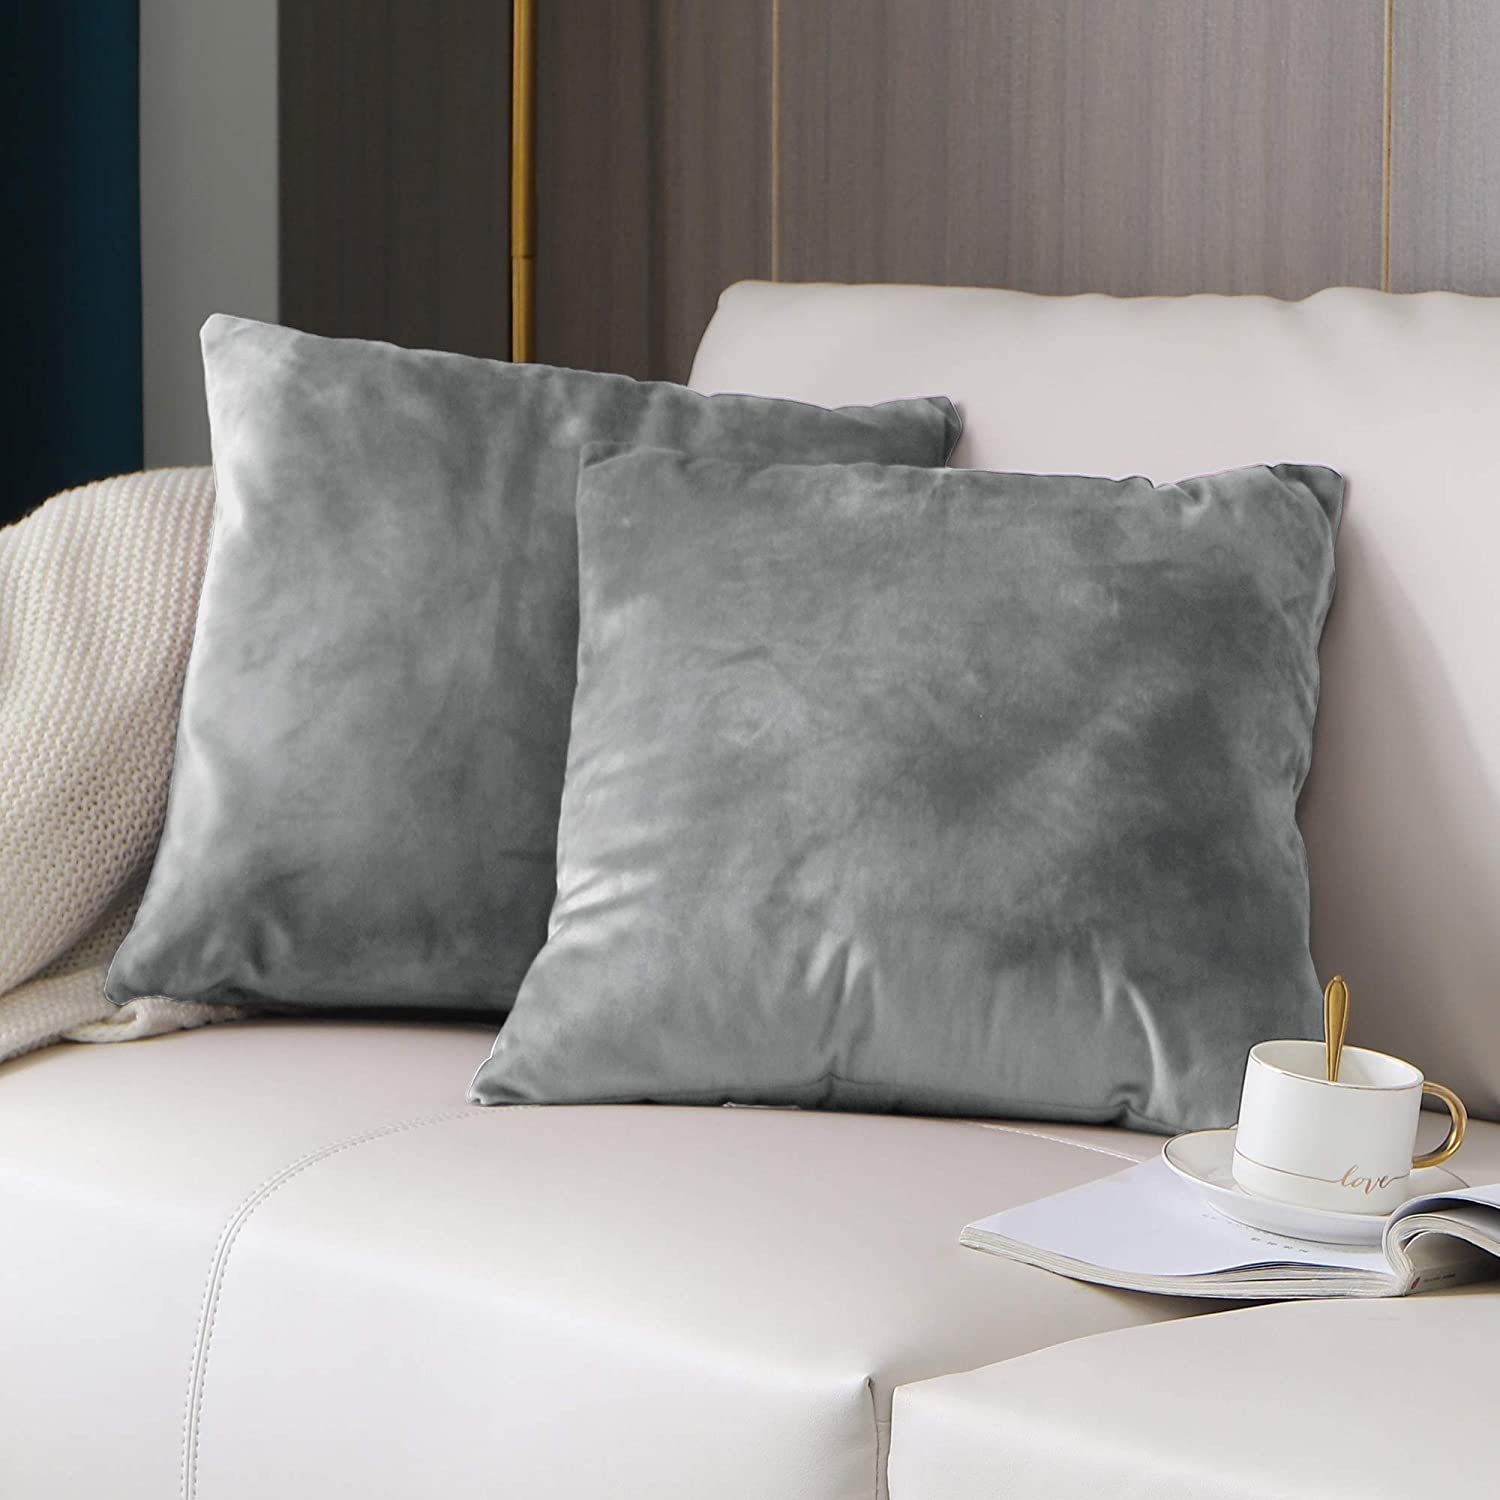 KOUFALL Silver Gray Throw Pillow Cover 18x18 Inch for Couch Set of 2 Pack Cushion Cover Home Decor Elegant Decorative Solid Soft Velvet Pillow Case for Sofa Bed and Chair 45x45 cm